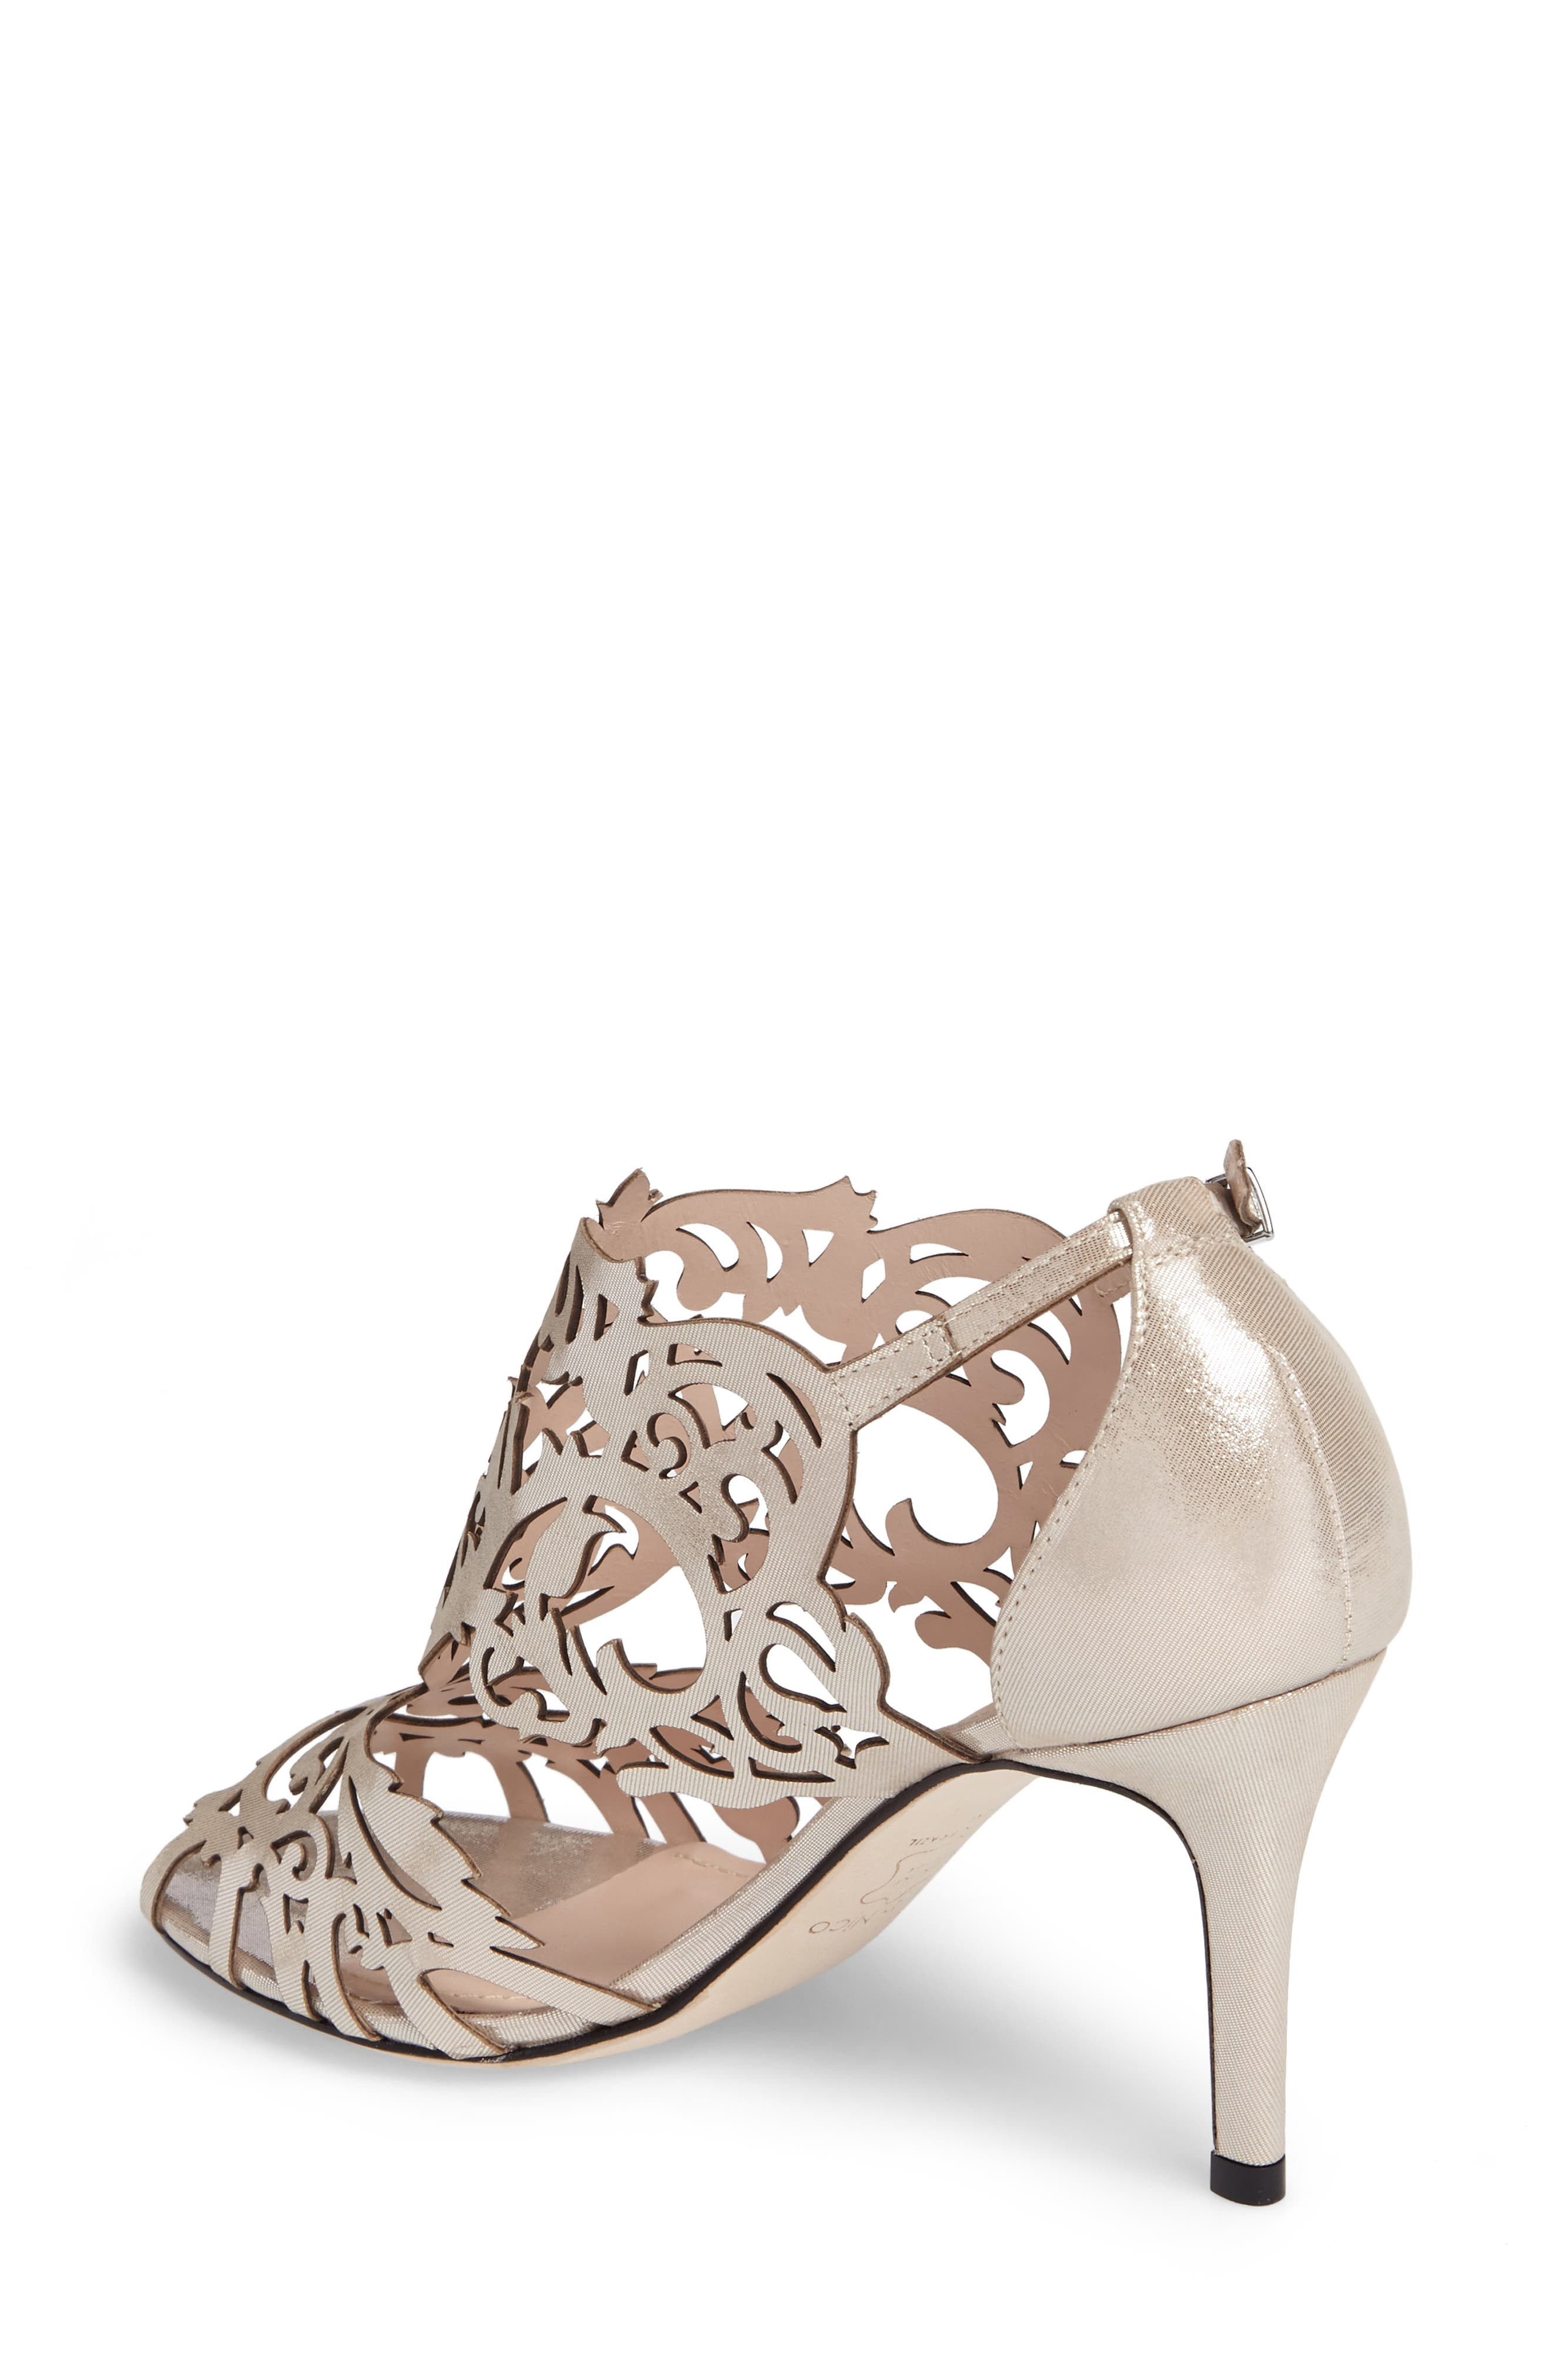 KLUB NICO, Marcela 3 Laser Cutout Sandal, Alternate thumbnail 2, color, SILVER LEATHER